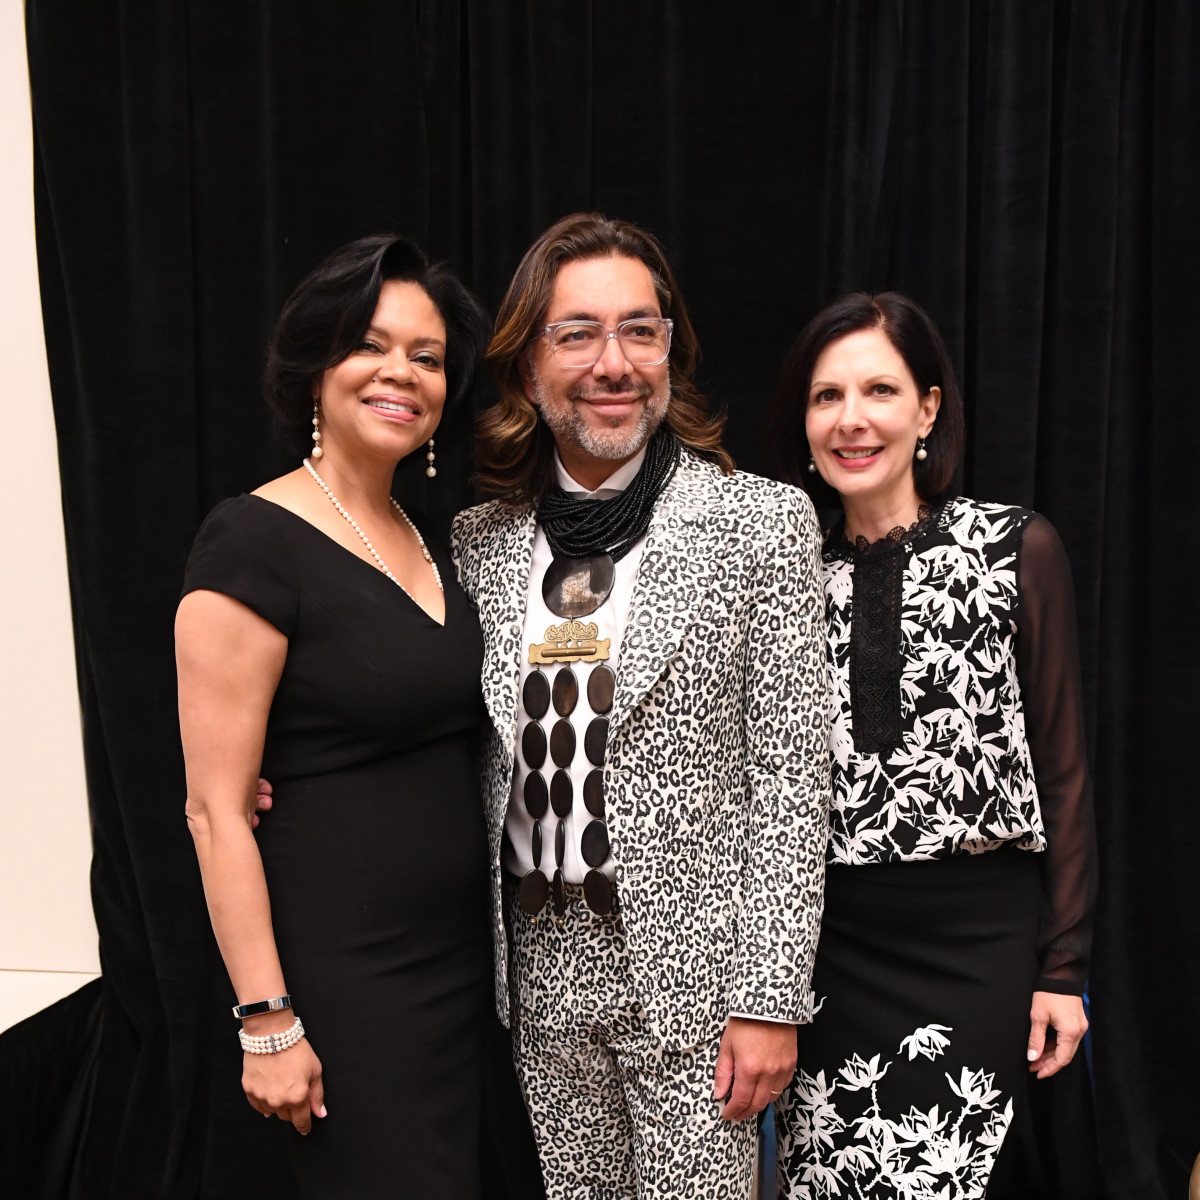 Passion for Fashion Luncheon Suzette Brimmer, Ceron, Jeanne Ruberti